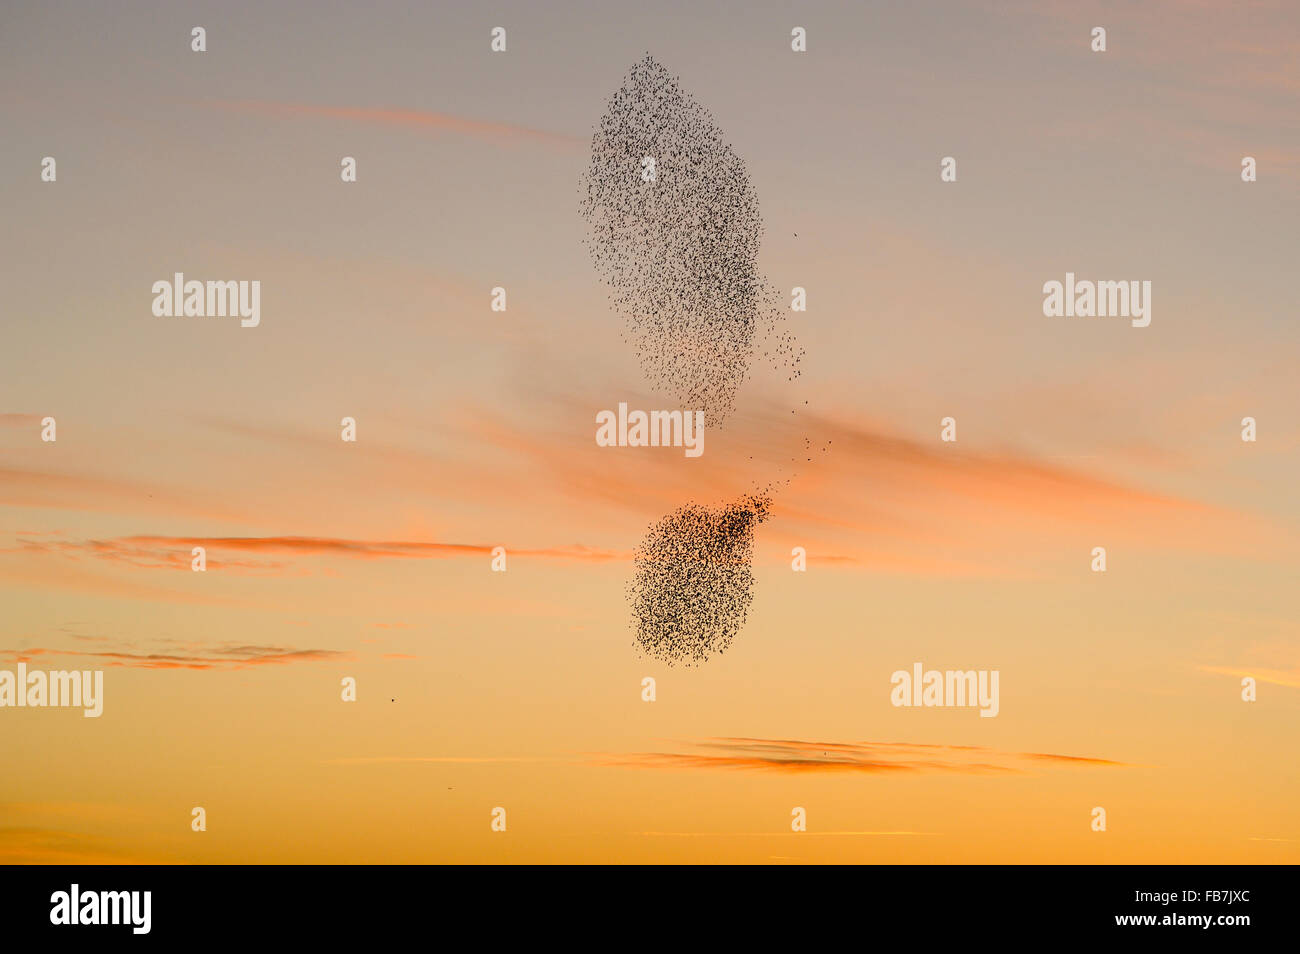 Starling flock (Sturnus vulgaris) at sunset, with peregrine falcon (Falco peregrinus) flying beside the flock, grouping - Stock Image